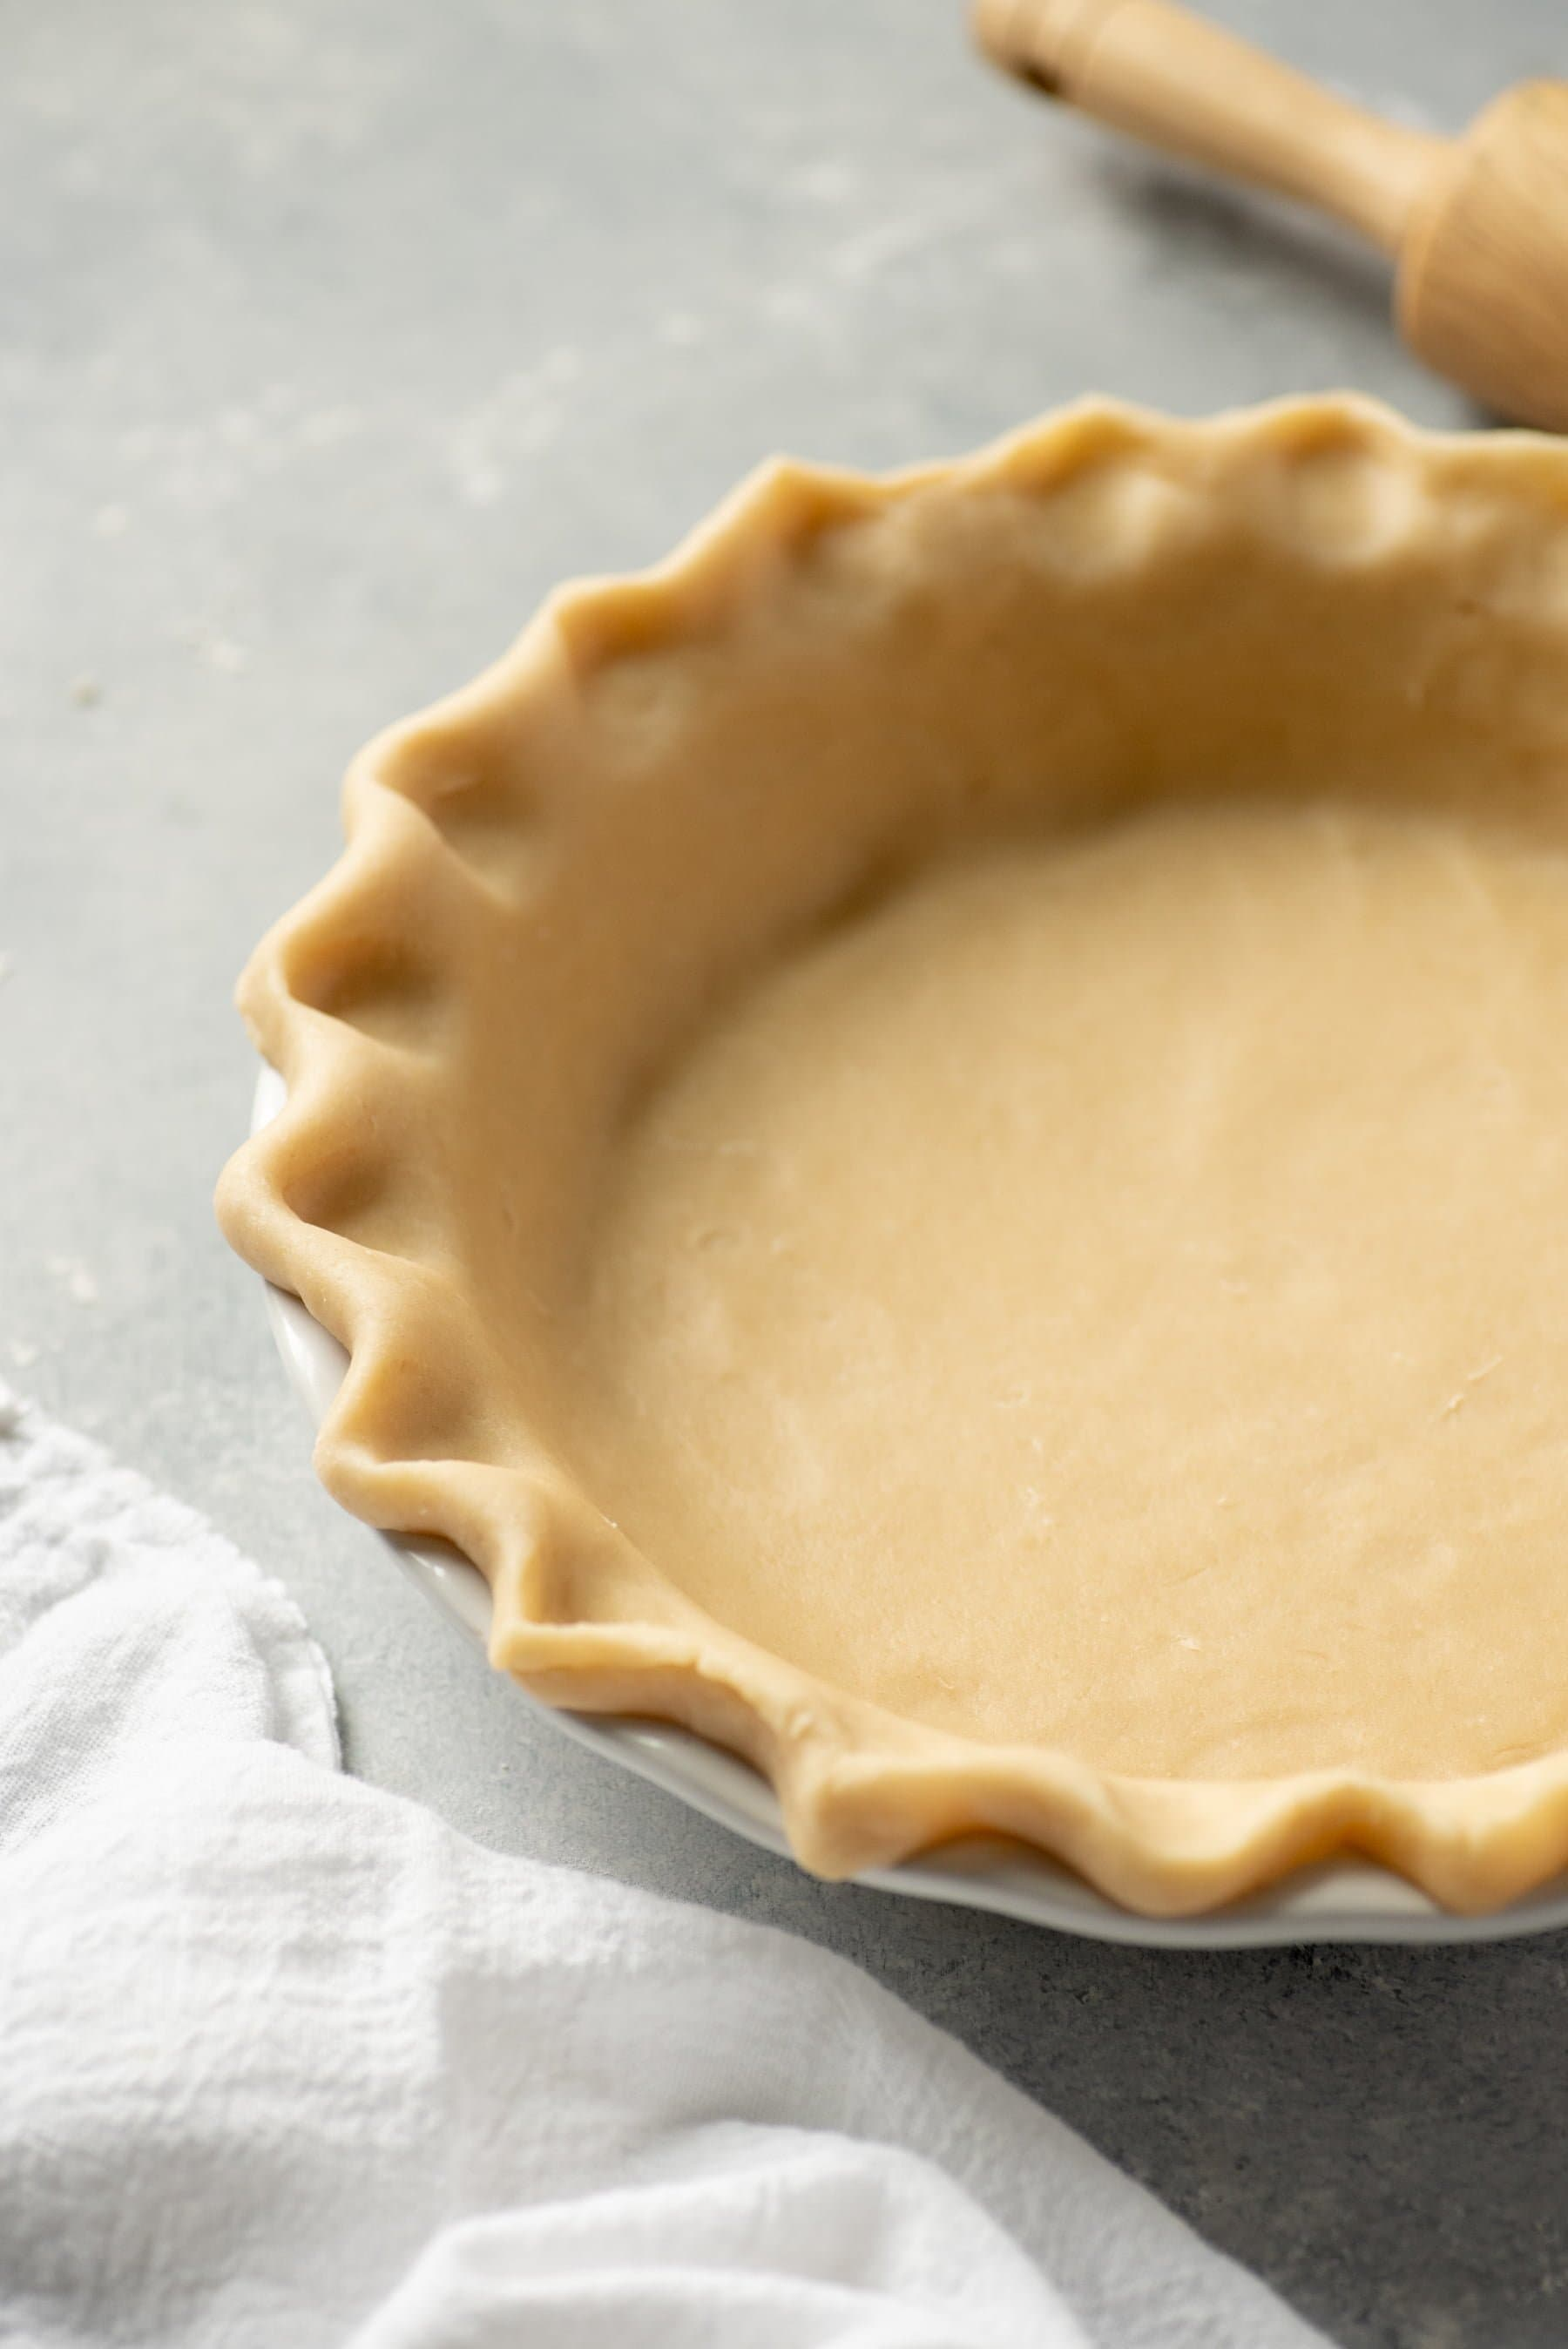 Close-up of unbaked pie crust with fluted edges pressed into a pie pan on a gray background